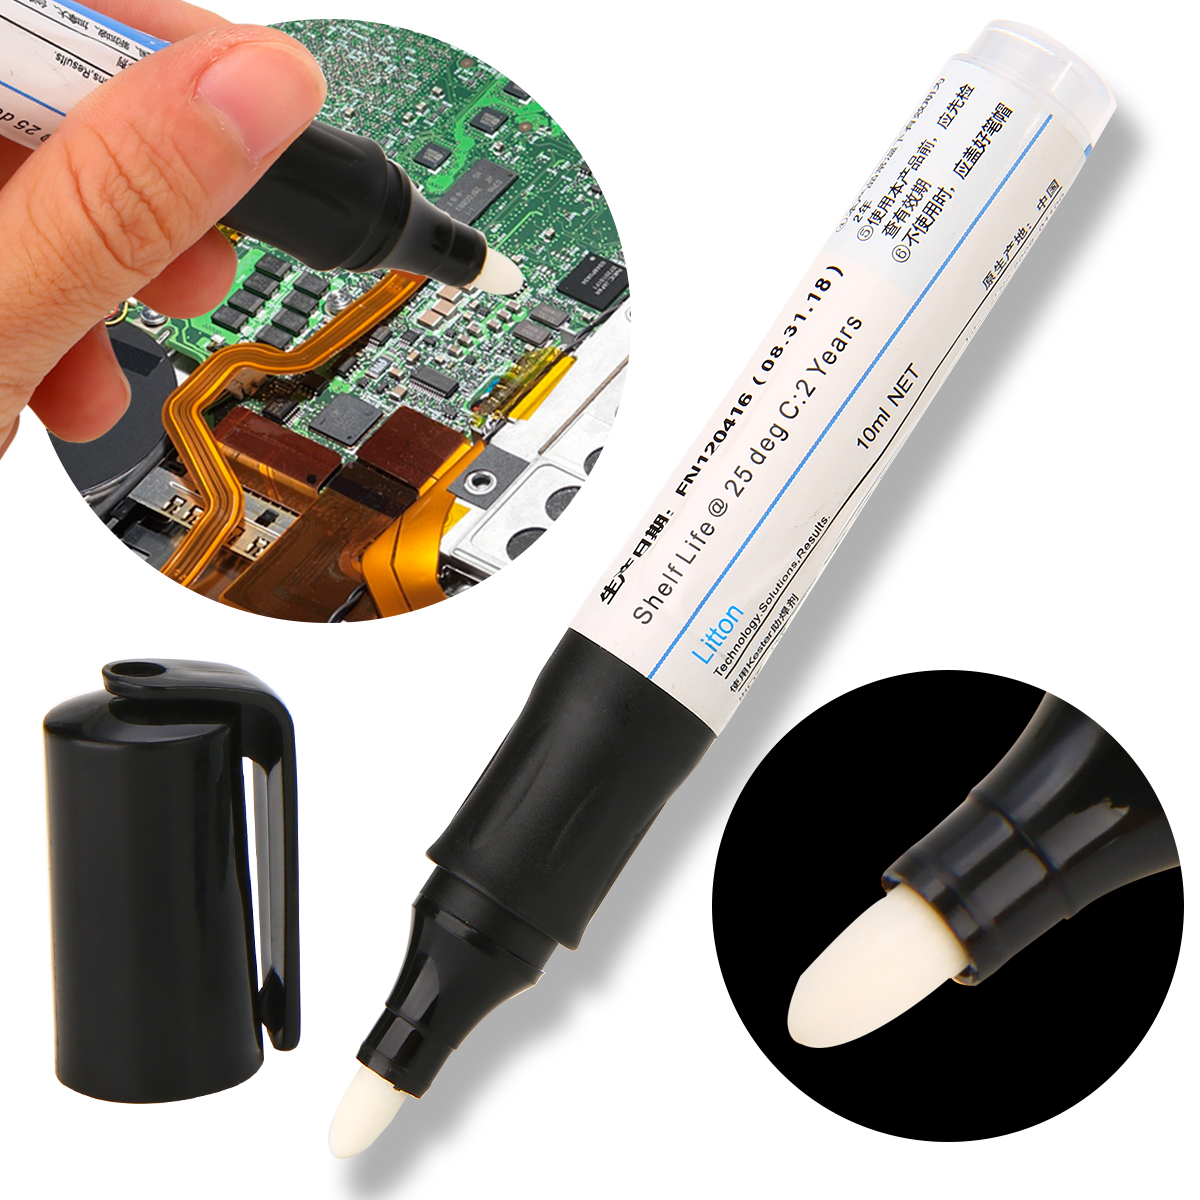 1X New 10ml Soldering Flux Pen Low-Solid Non-Clean Surface Mount Solar Panel White Head Rosin Flux Pen